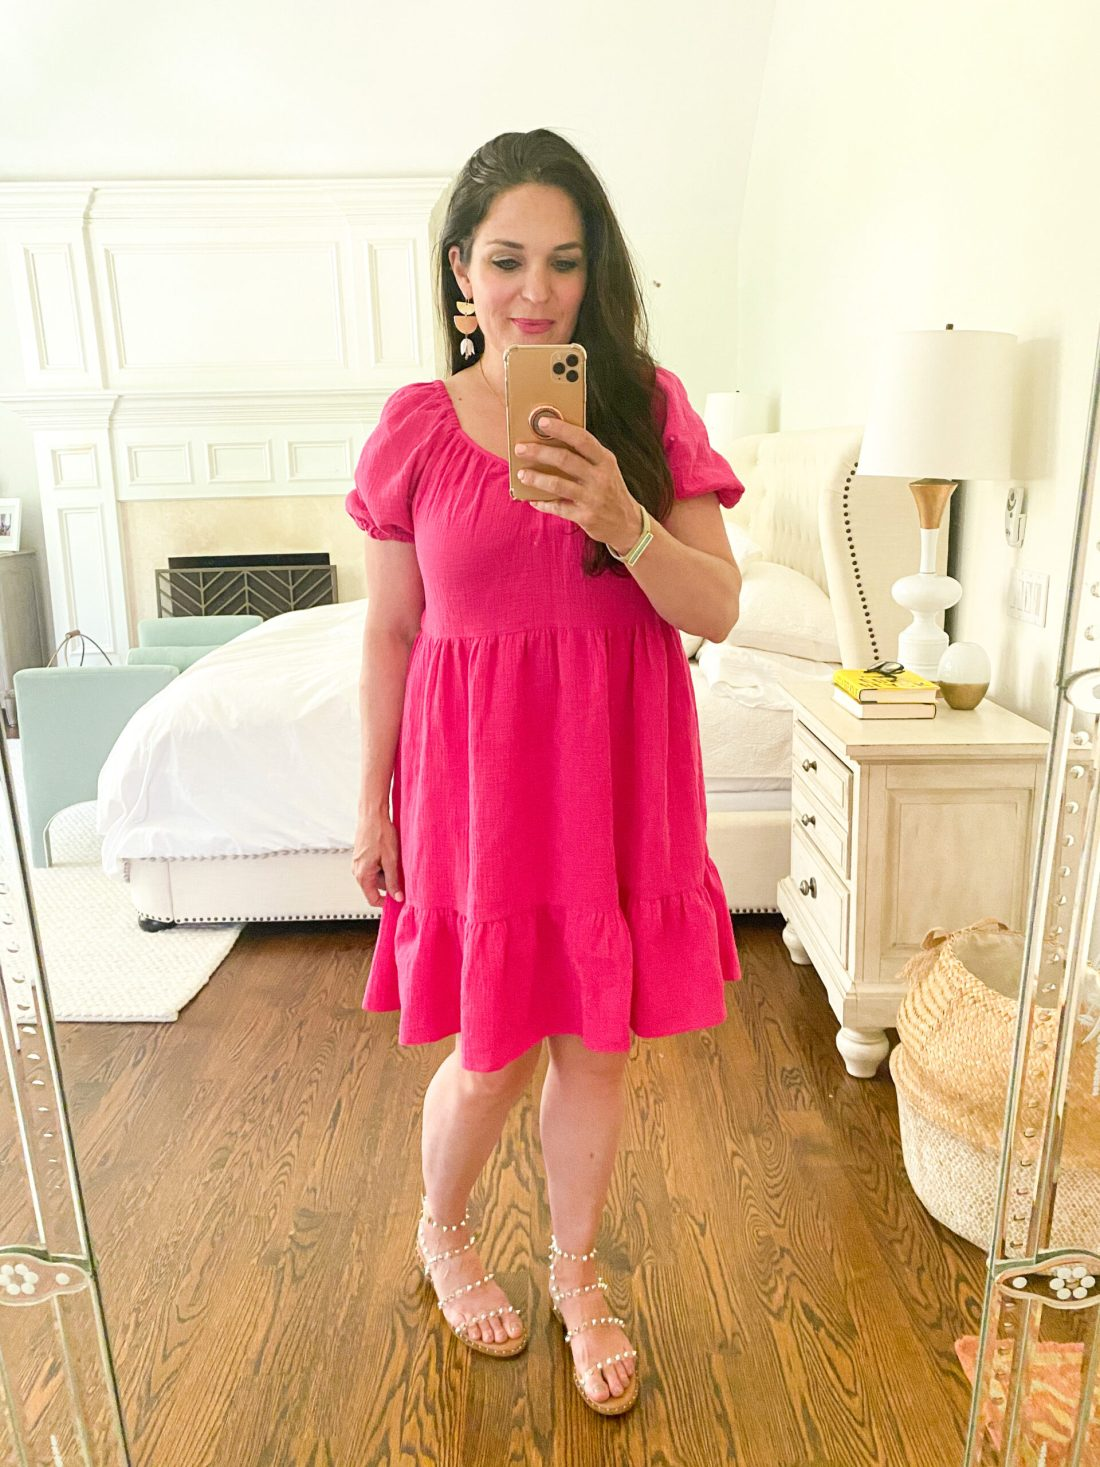 Snatch one or maybe two of these darling summer dress from Target that are mostly under $50 and so cute and fancy! || Darling Darleen Top  CT Lifestyle Blogger